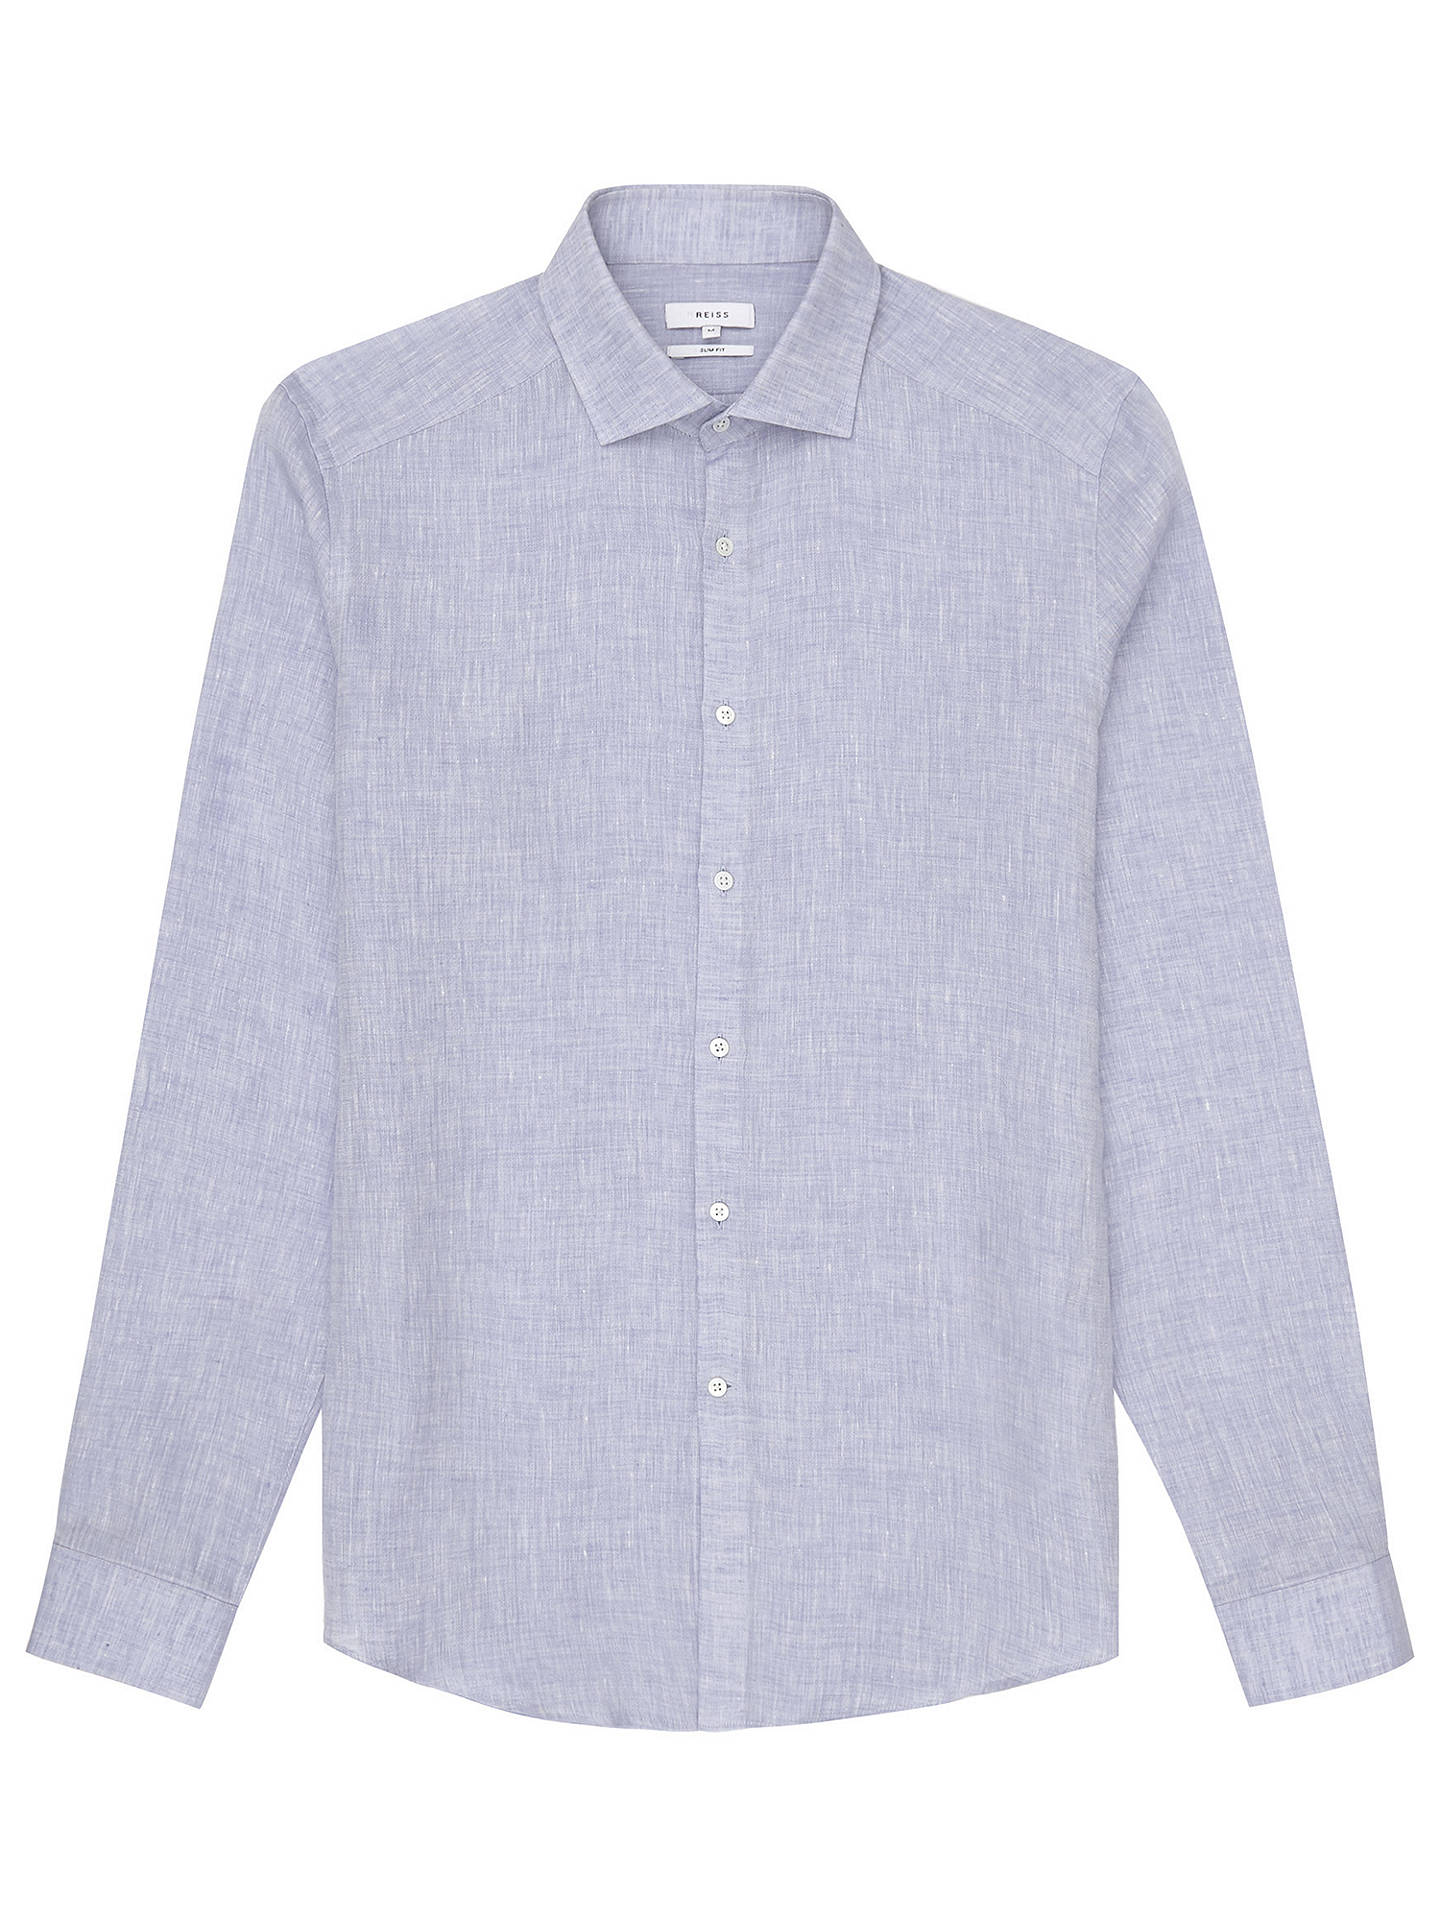 BuyReiss Perdu Regular Fit Textured Linen Shirt, Soft Blue, S Online at johnlewis.com